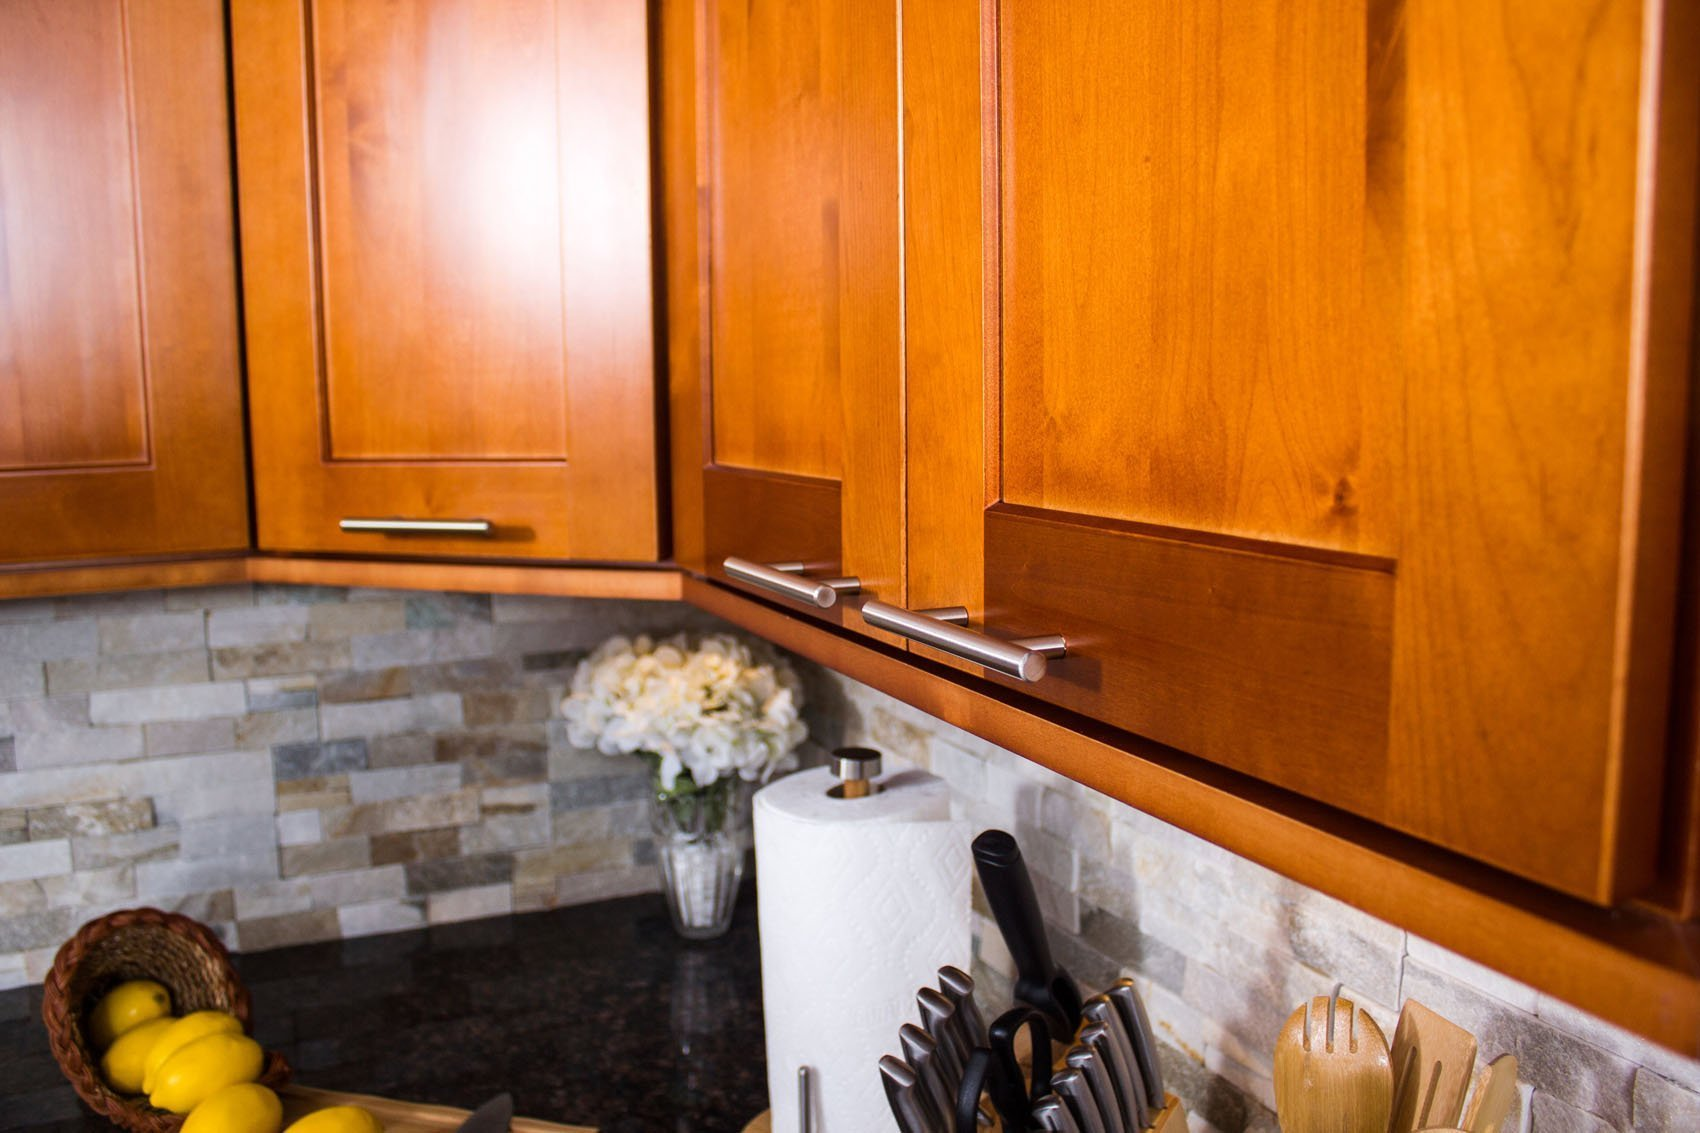 NKBC Inc - Toffee Cabinets with Handle